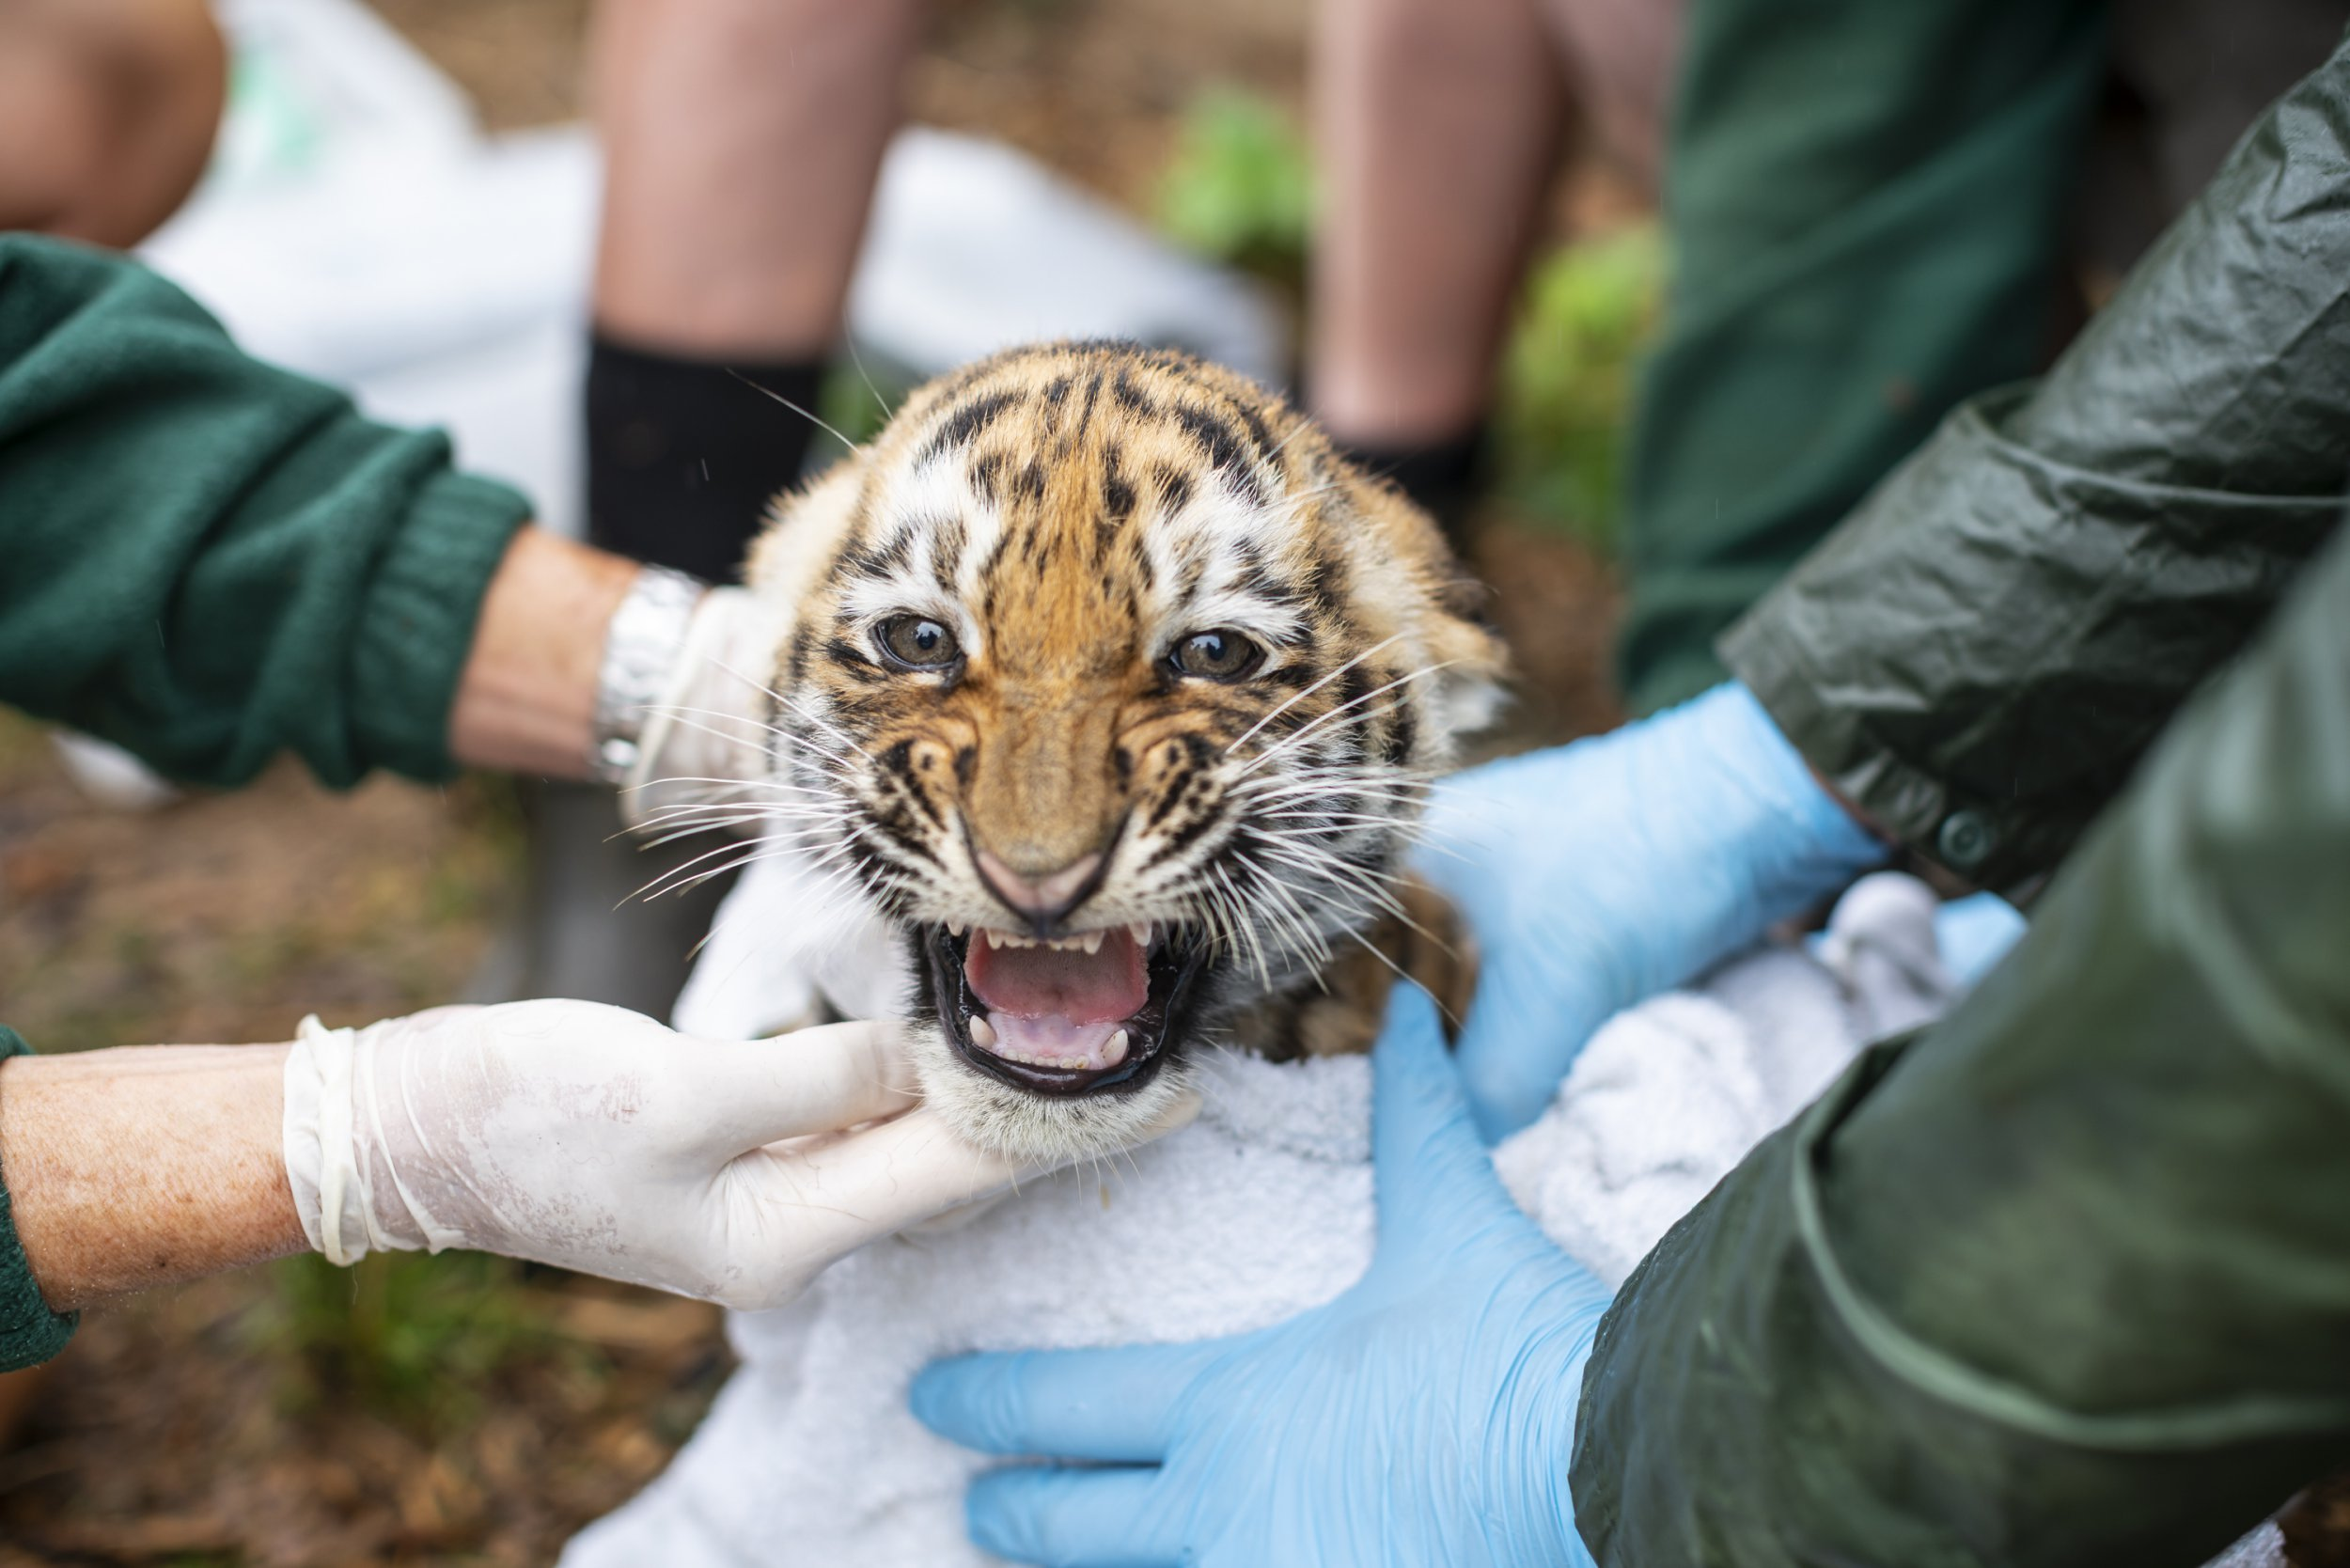 Really angry tiger cubs get their first health checkup at Whipsnade Zoo picture; ZSL SUPPLIED TO metro.co.uk https://zslondon.sharefile.com/share/view/s5ee361e69244e13a